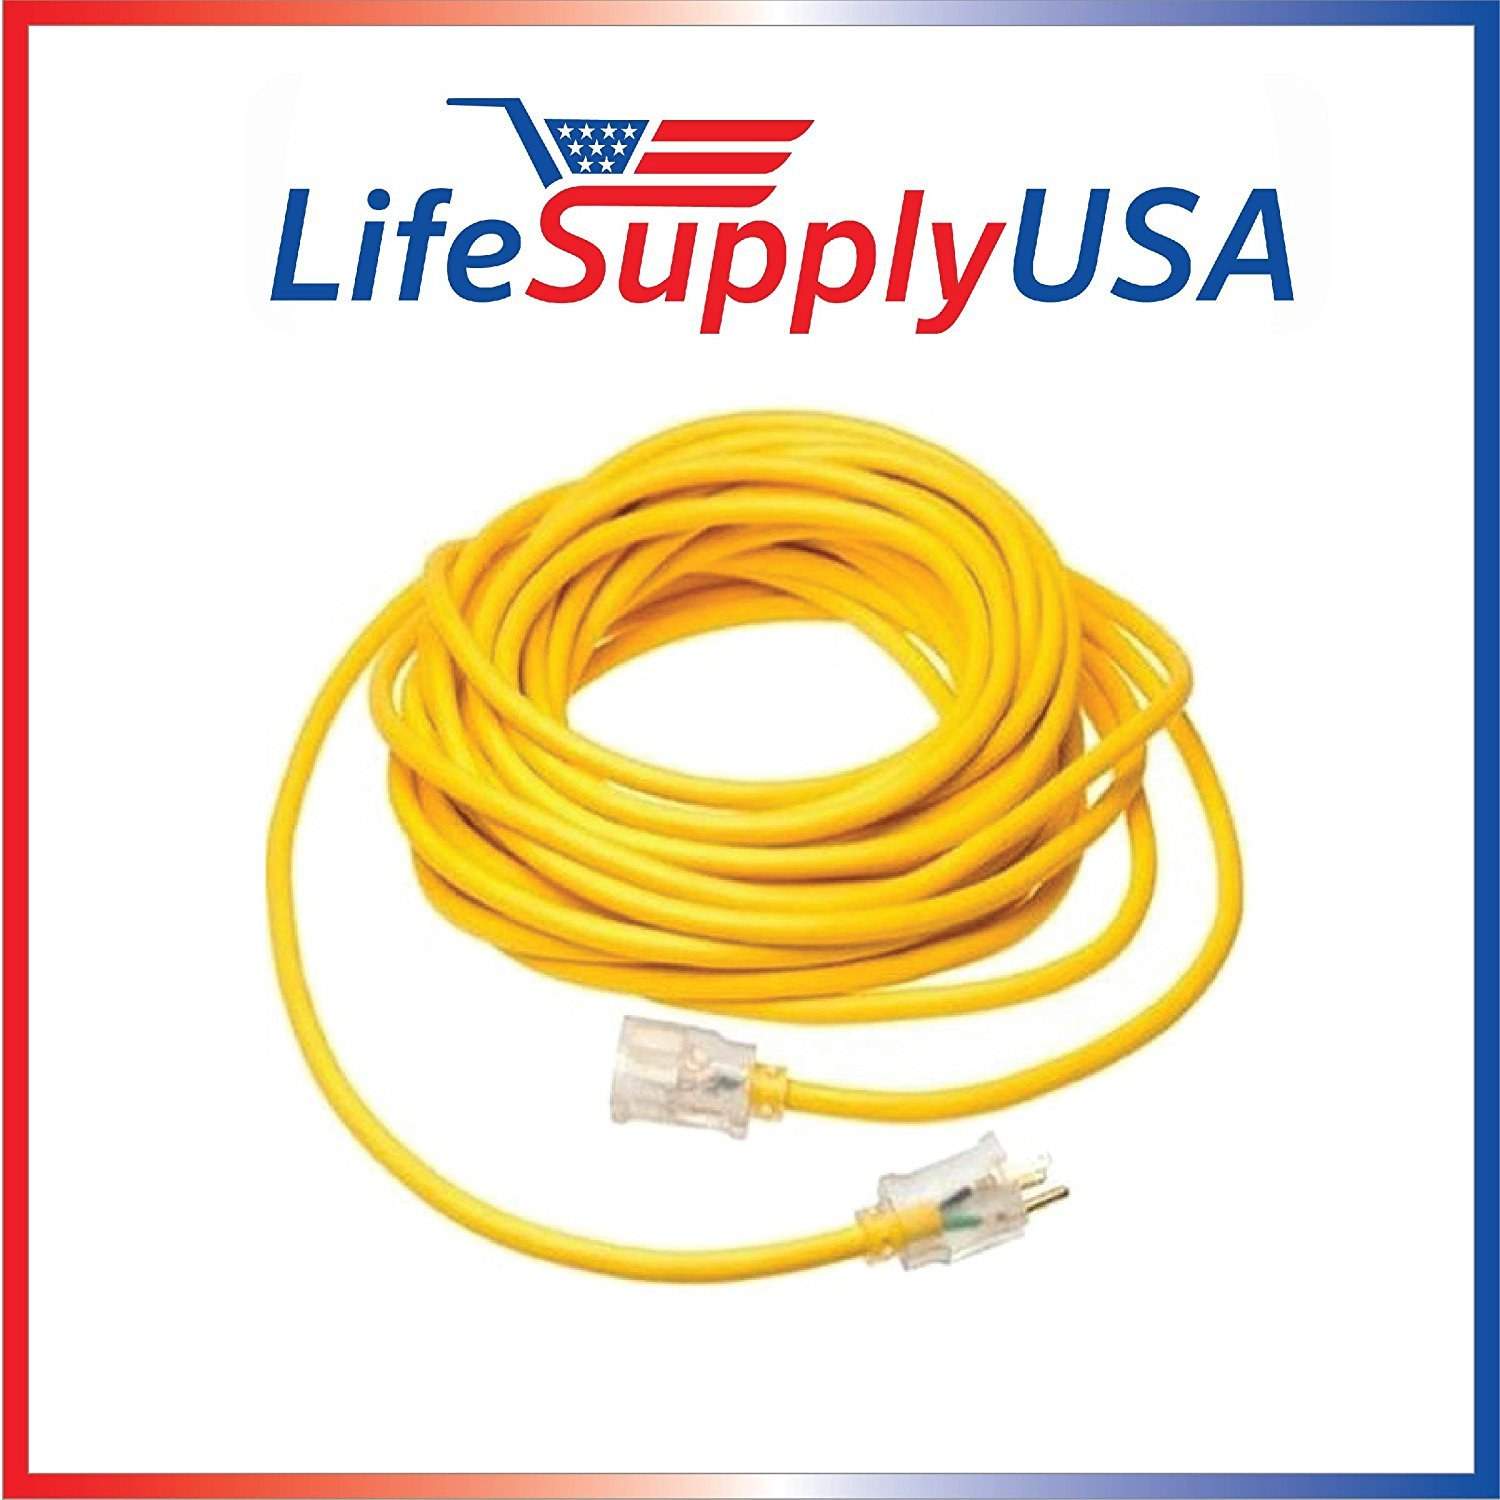 14/3 200ft SJTW Full Copper 15 Amp 125 Volt 1625 Watt Lighted End Indoor/Outdoor Extension Cord (200 feet) by LifeSupplyUSA